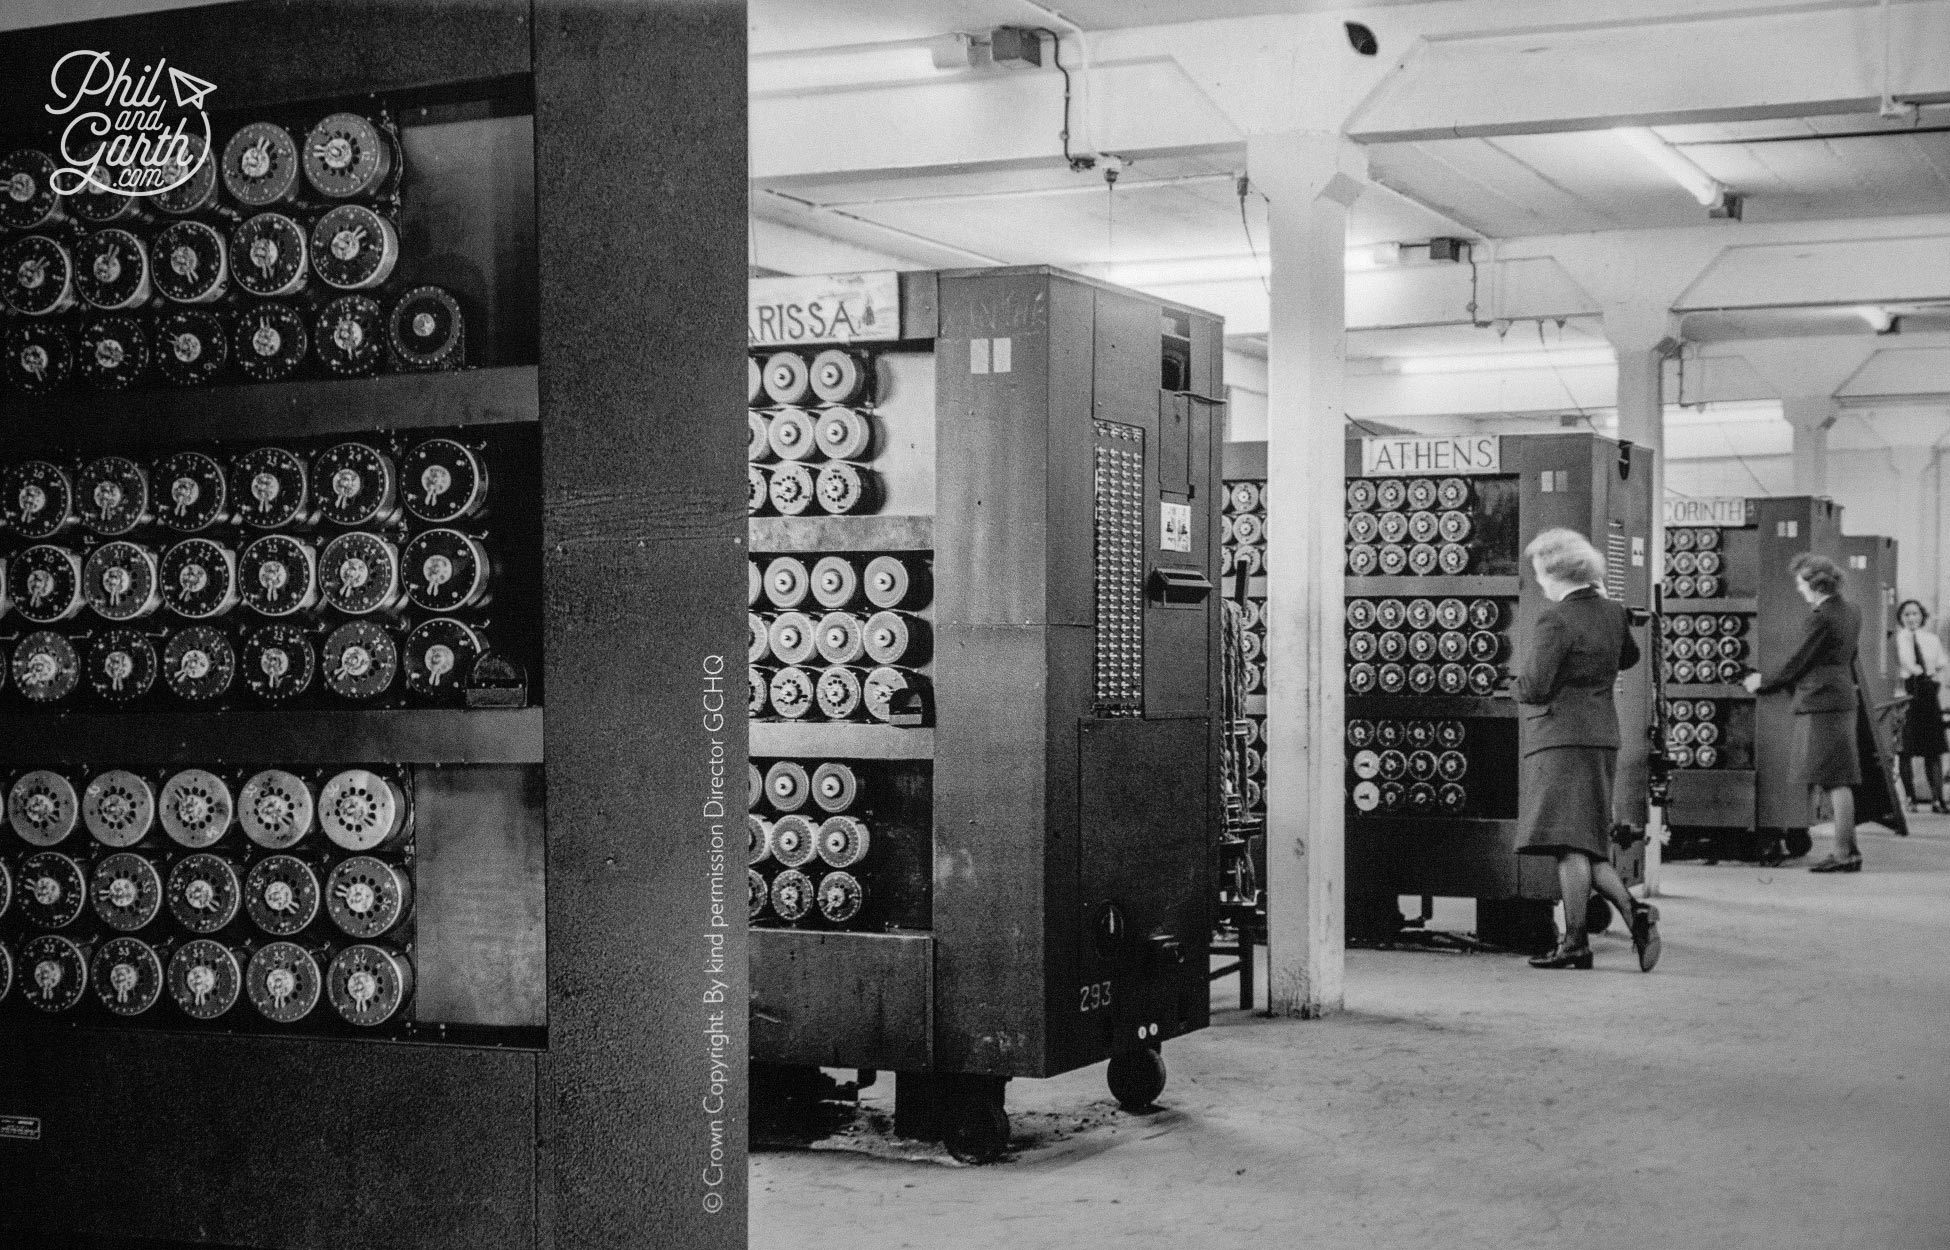 Inside Hut 11 which housed the first Bombe machines